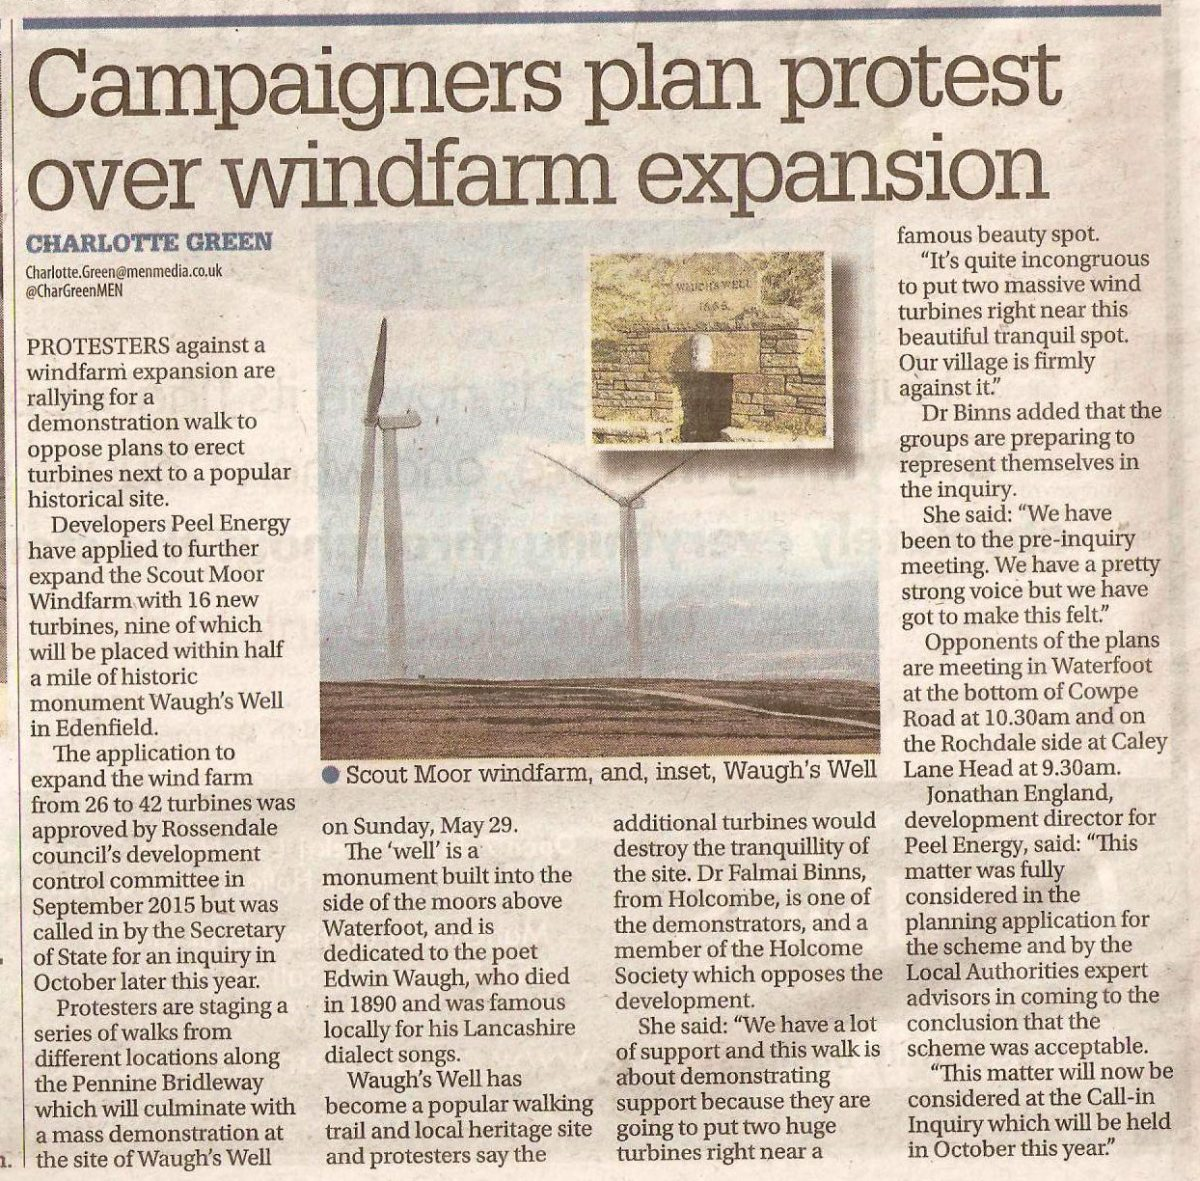 Campaigners plan protest over wind farm expansion